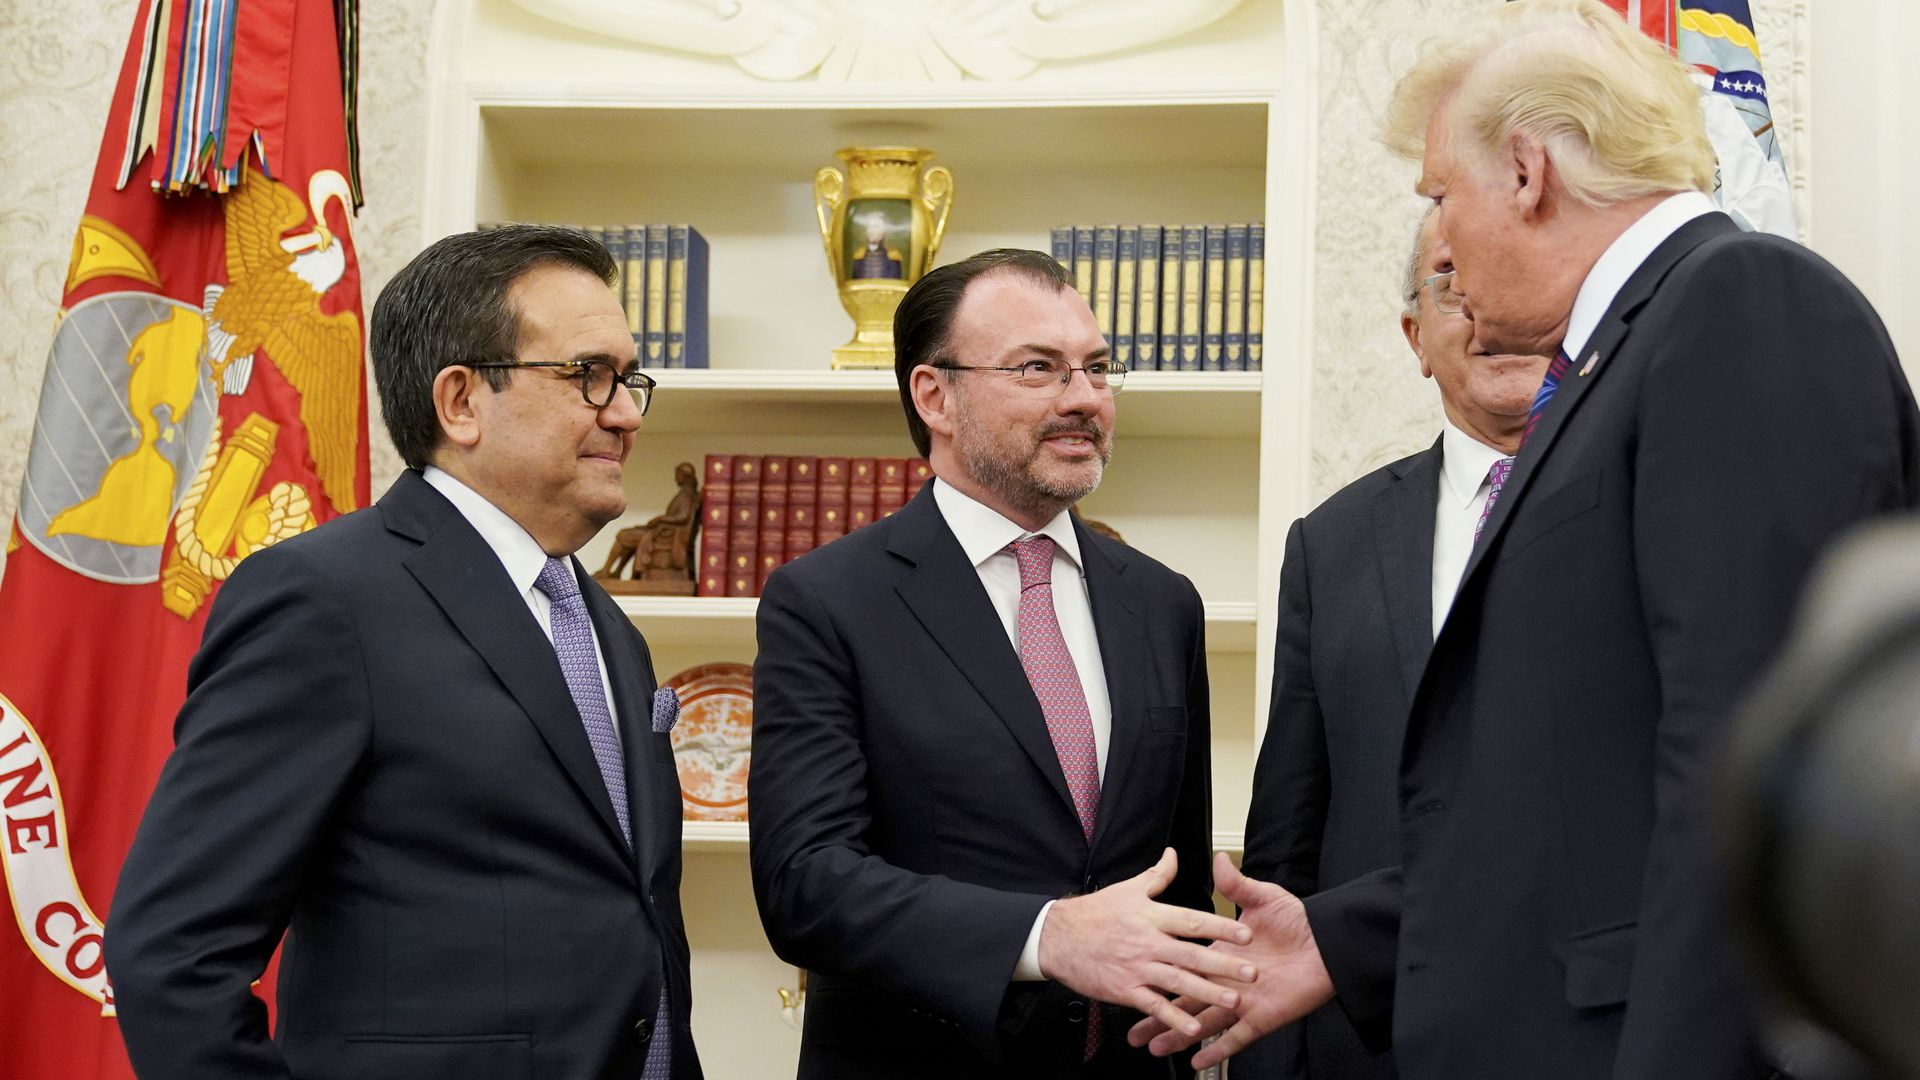 US President Donald Trump shakes hands with Mexico's Foreign Minister Luis Videgaray Caso as he arrives to speak on trade in the Oval Office.